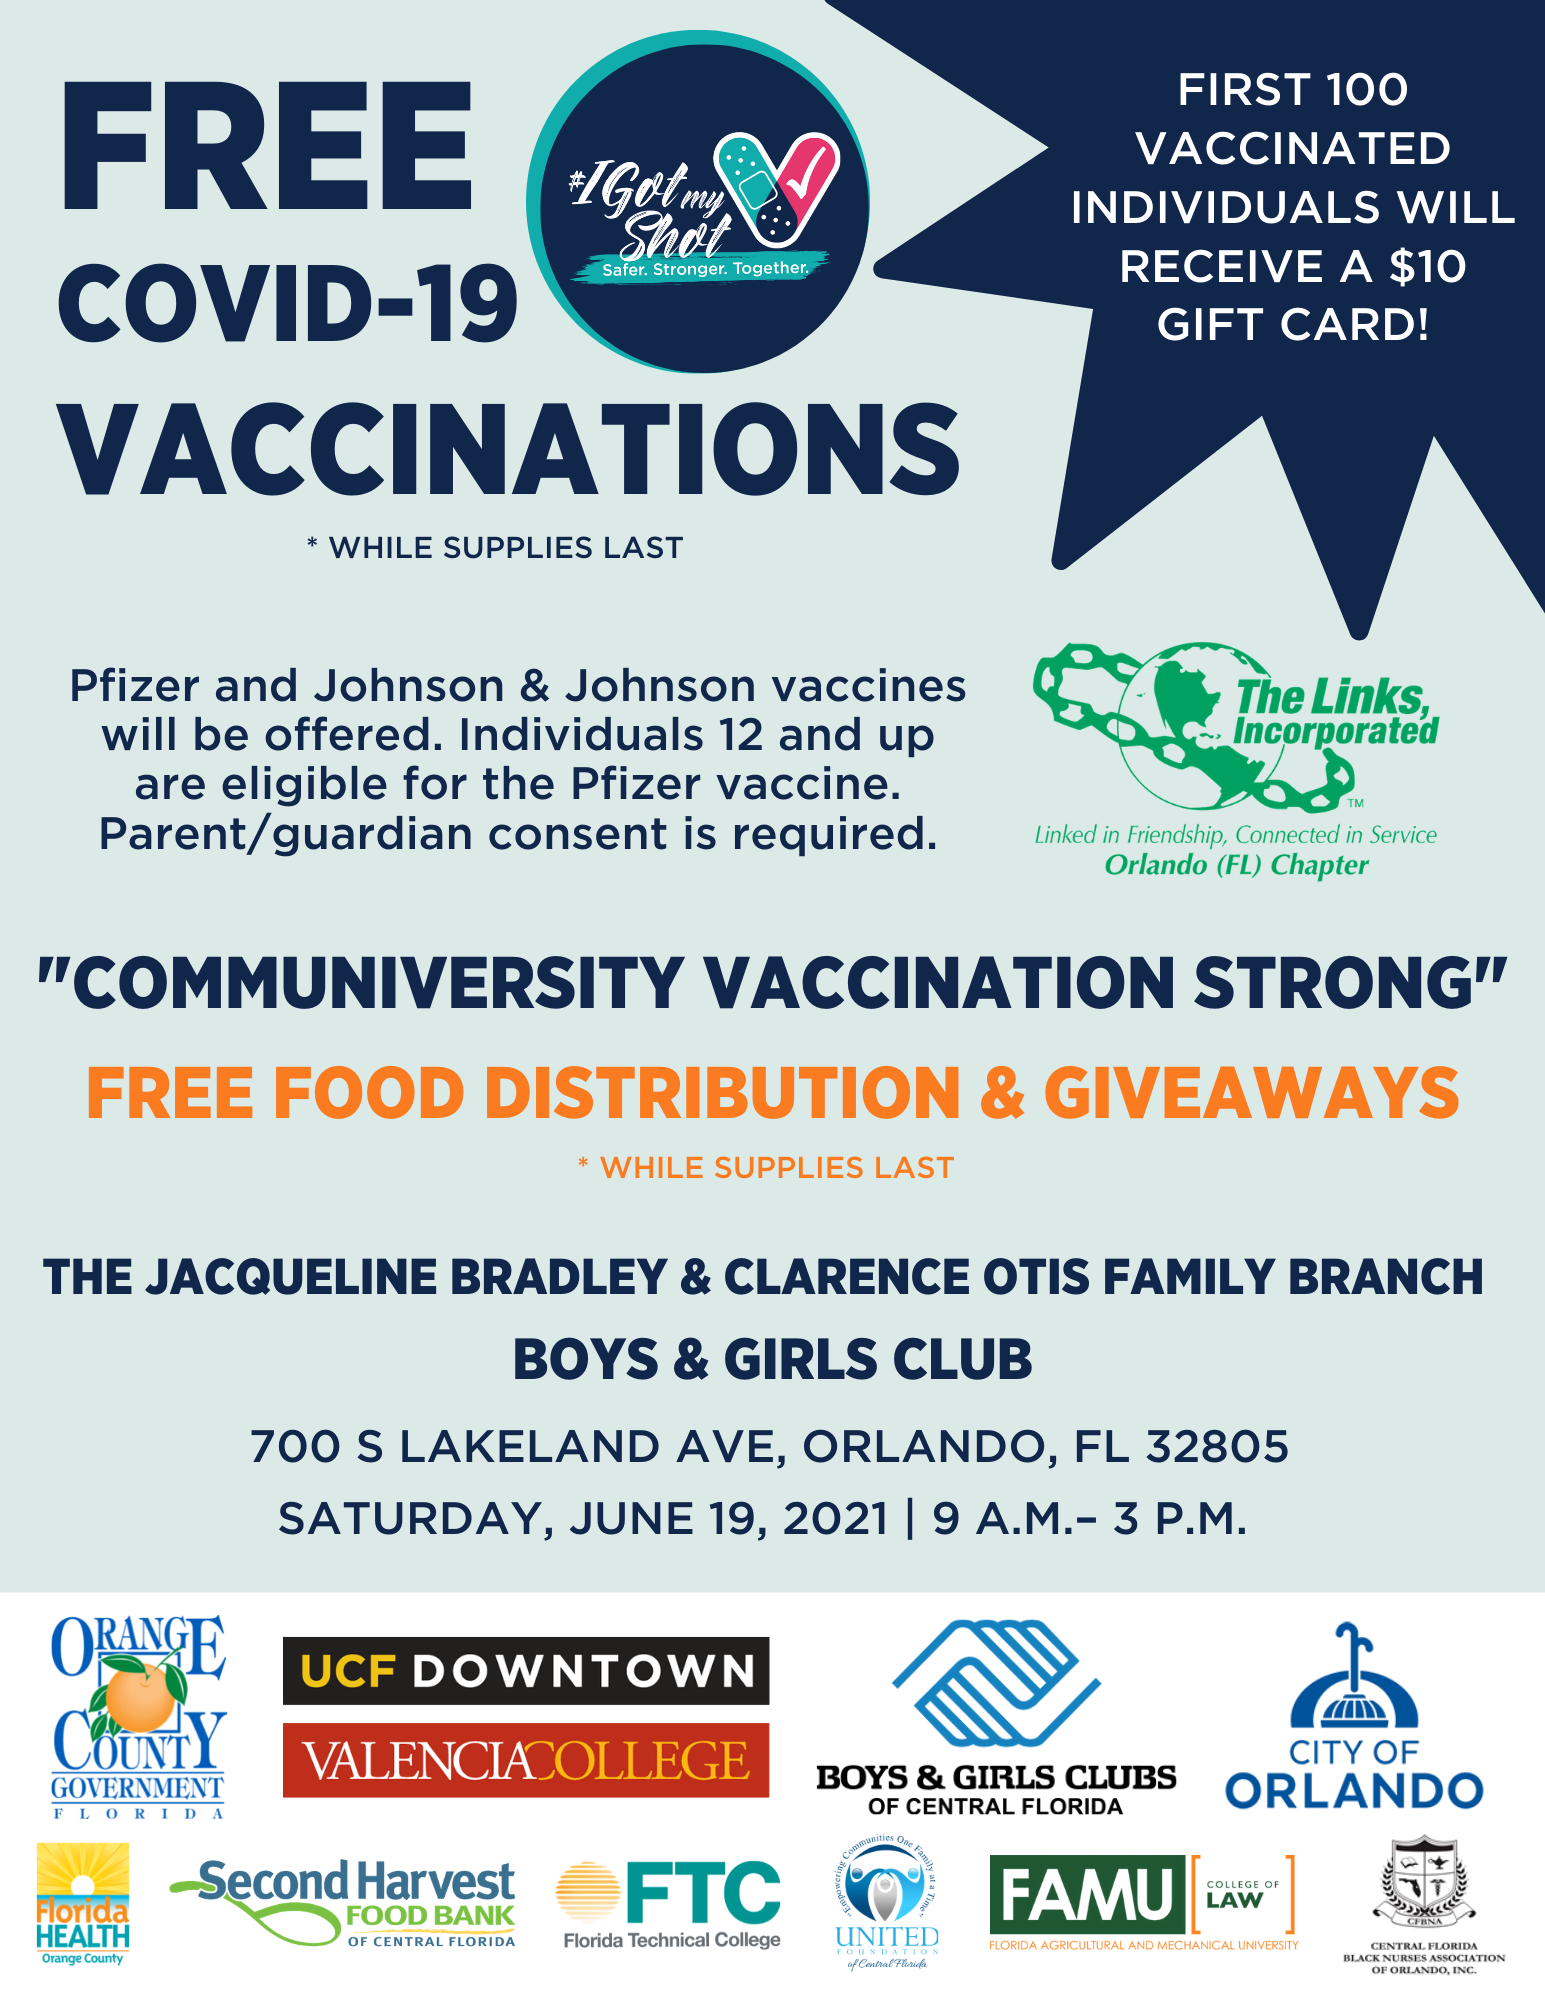 Communiversity Flyer - Free COVID-19 vaccinations (while supplies last) - First 100 vaccinated individuals will receive a $10 gift card - Pfizer and Johnson & Johnson vaccines will be offered. Individuals 12 and up are eligible for the Pfizer vaccine. Parent or guardian consent is required. - Communiversity Vaccination Strong - Free food distribution and giveaways (while supplies last) - The Jacqueline Bradley & Clarence Otis Family Branch - Boys & Girls Club - 700 S Lakeland Ave Orlando FL 32805 - Saturday June 19 2021 - 9AM to 3PM